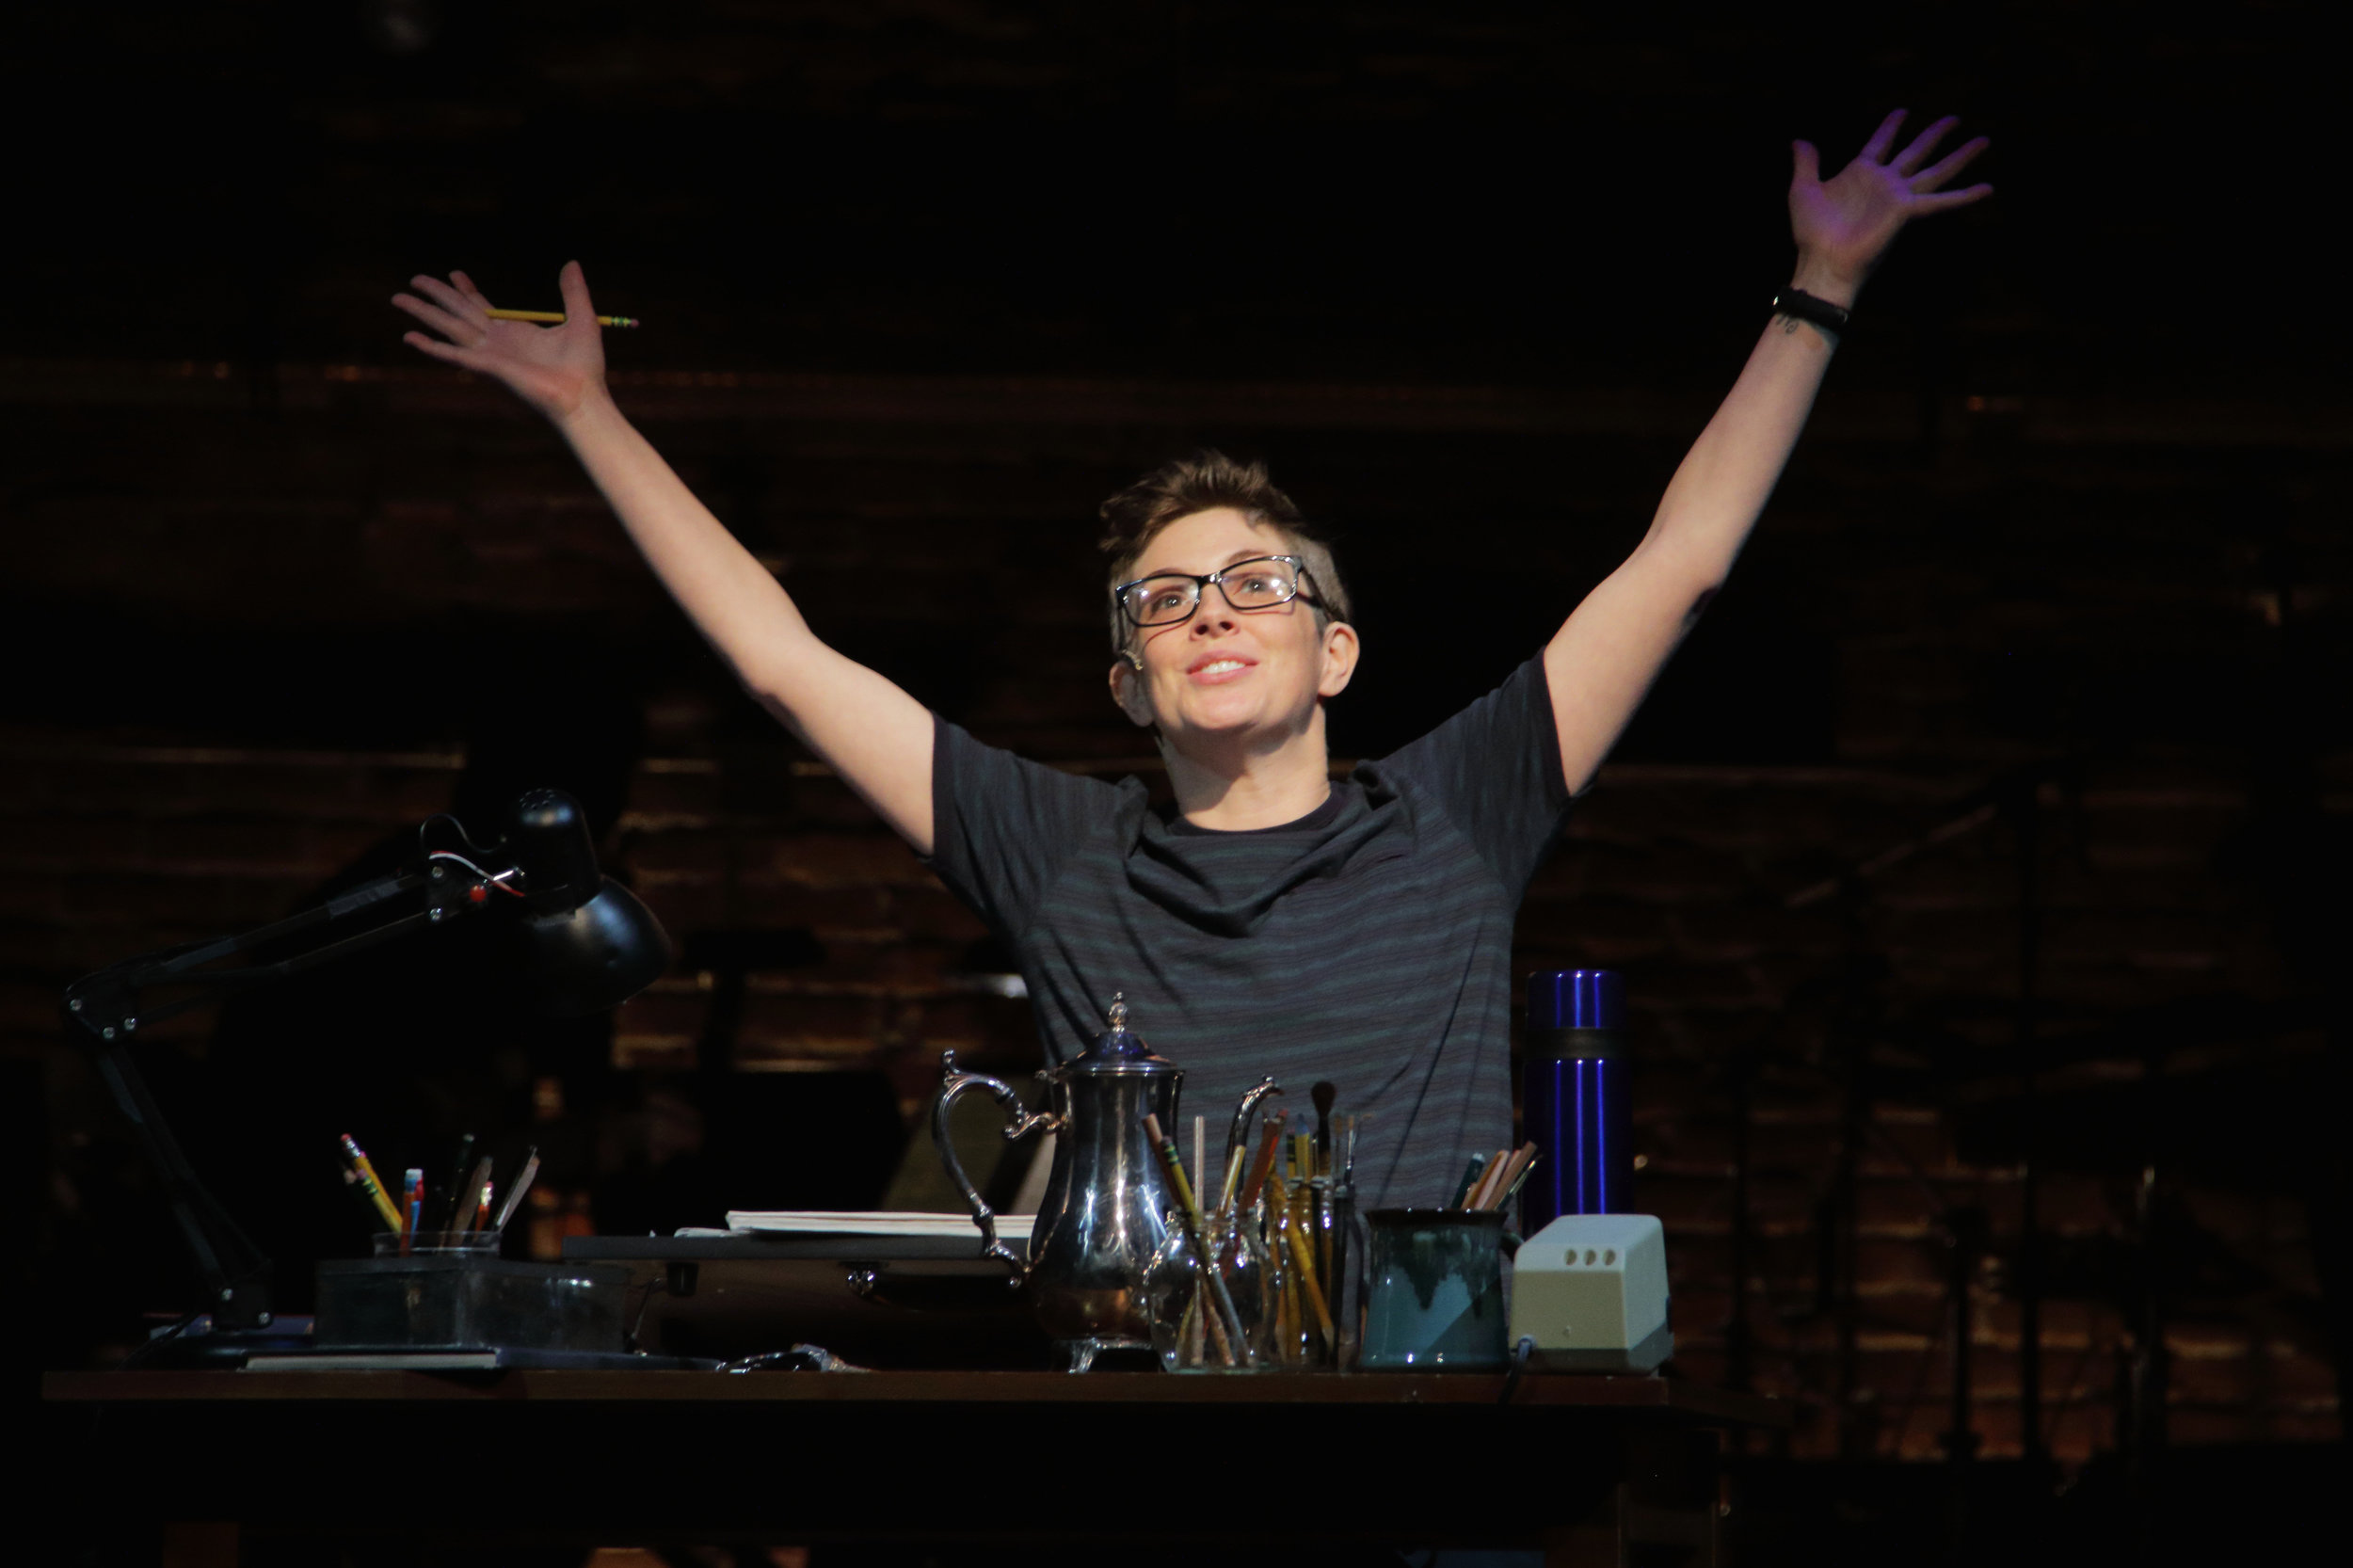 FunHome closeups 015_edit.jpg